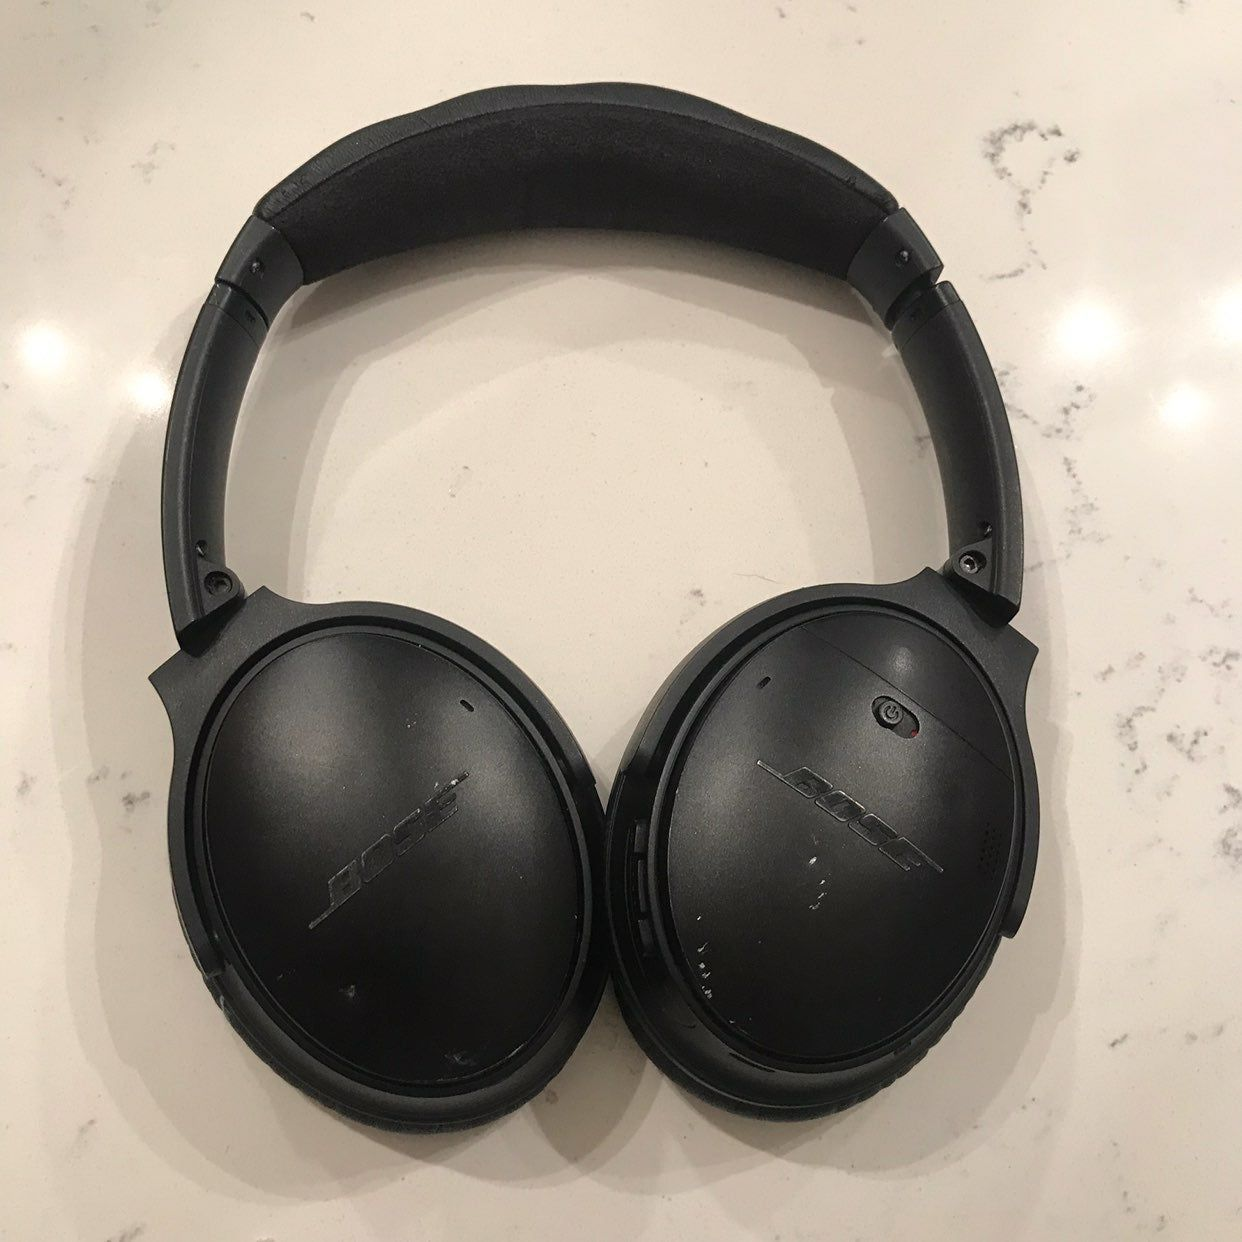 Bose Quiet Comfort 35 Series I The Sides Of The Headphones Have Wear The Ear Muffs Have Some Light Wear And The Last Picture Leather Pieces Earmuffs Leather